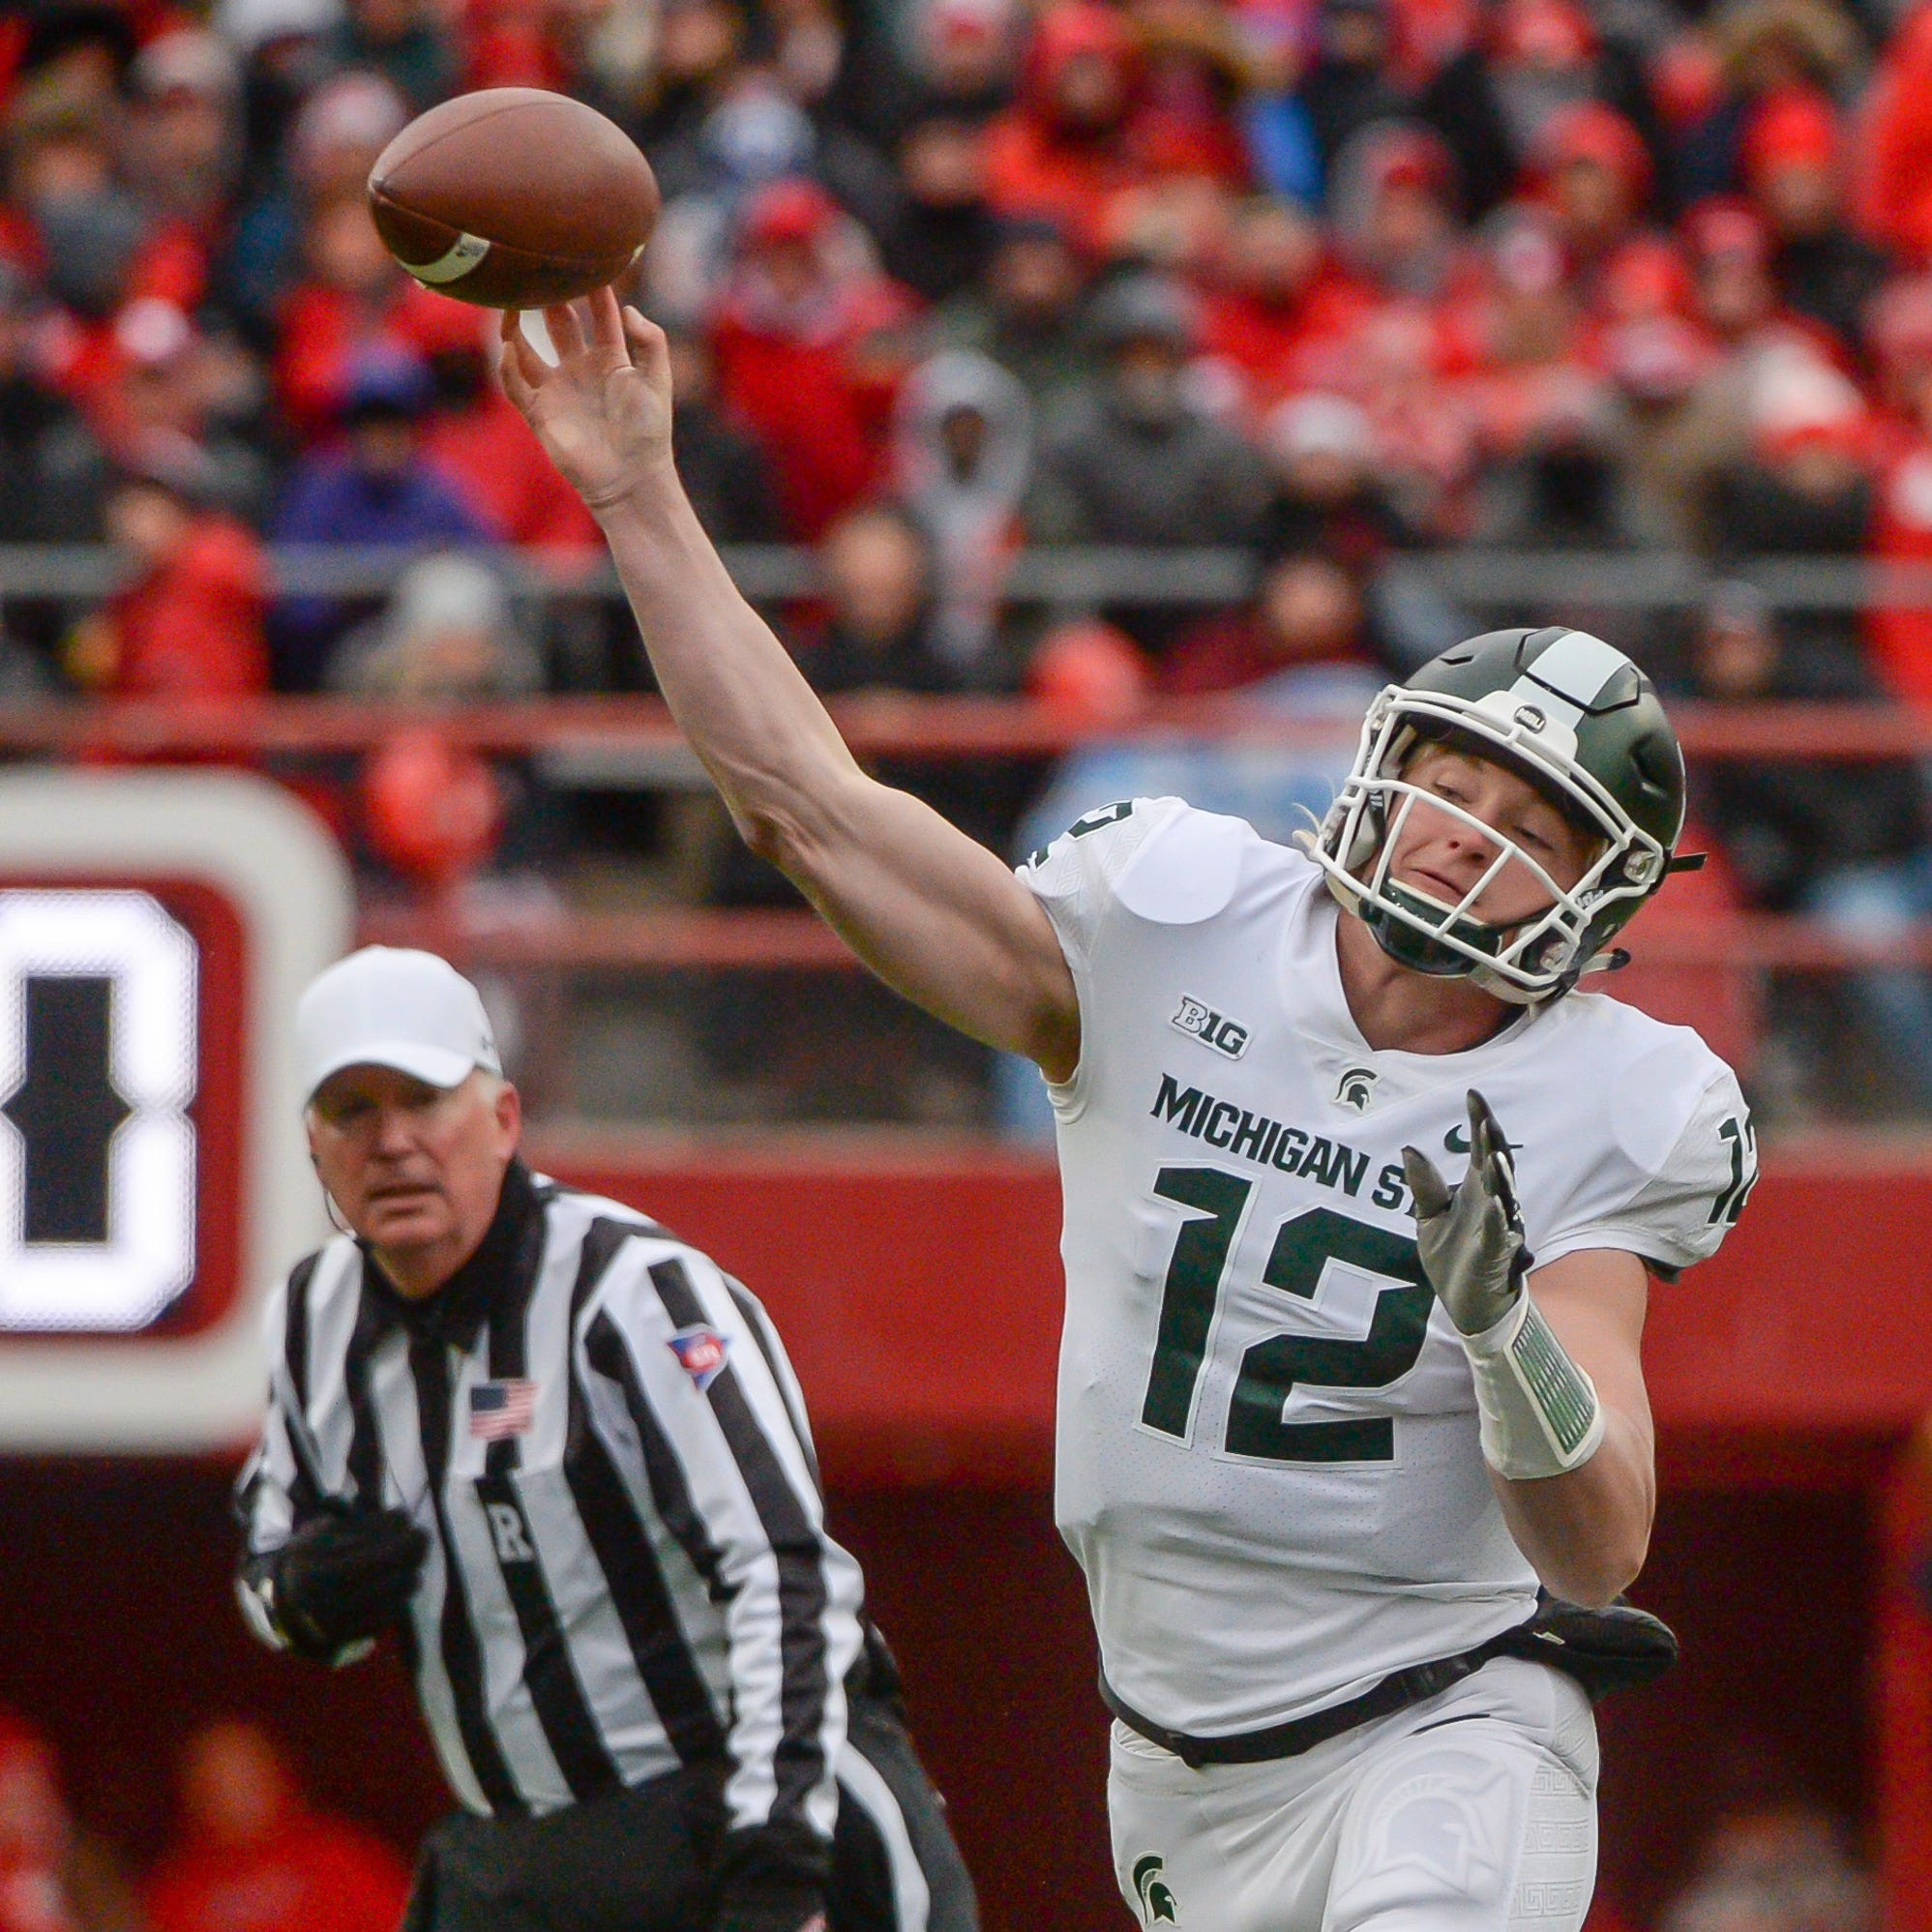 Live updates: Nebraska cuts MSU lead in half with FG